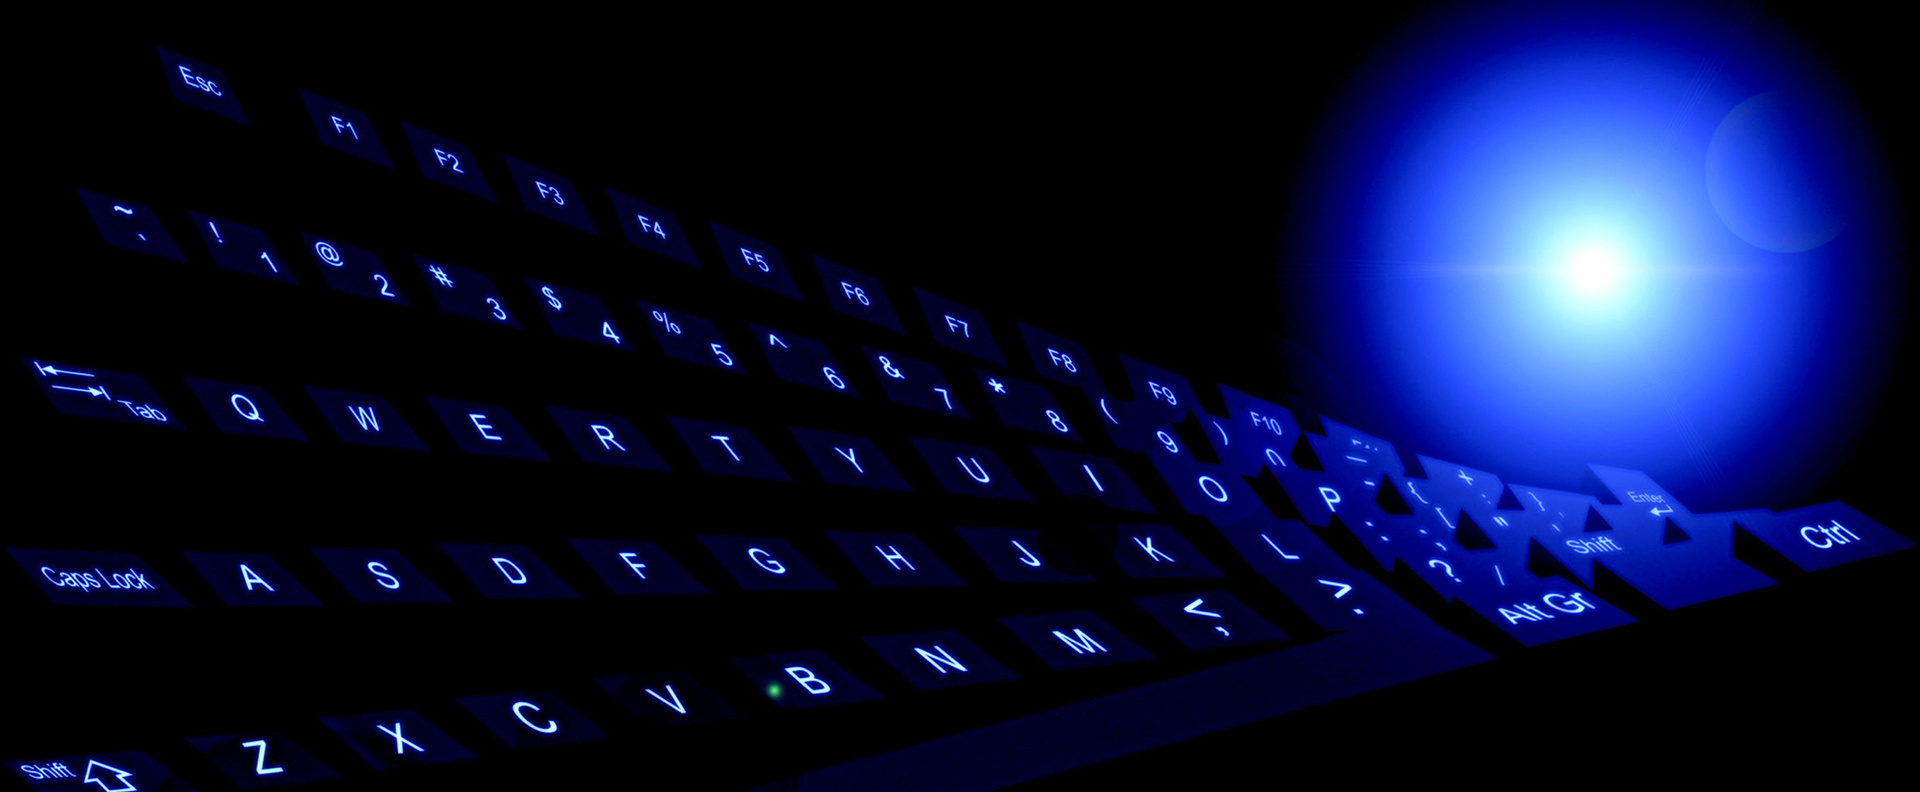 Mechanical Keyboard Round Up 22 Monsters Compared Steelseries Apex M500 Red Switch Cherry Got A Boost As Well To Develop New Types Of Switches Which They Could Still Exclusively Produce And So Did Creating Quieter Faster